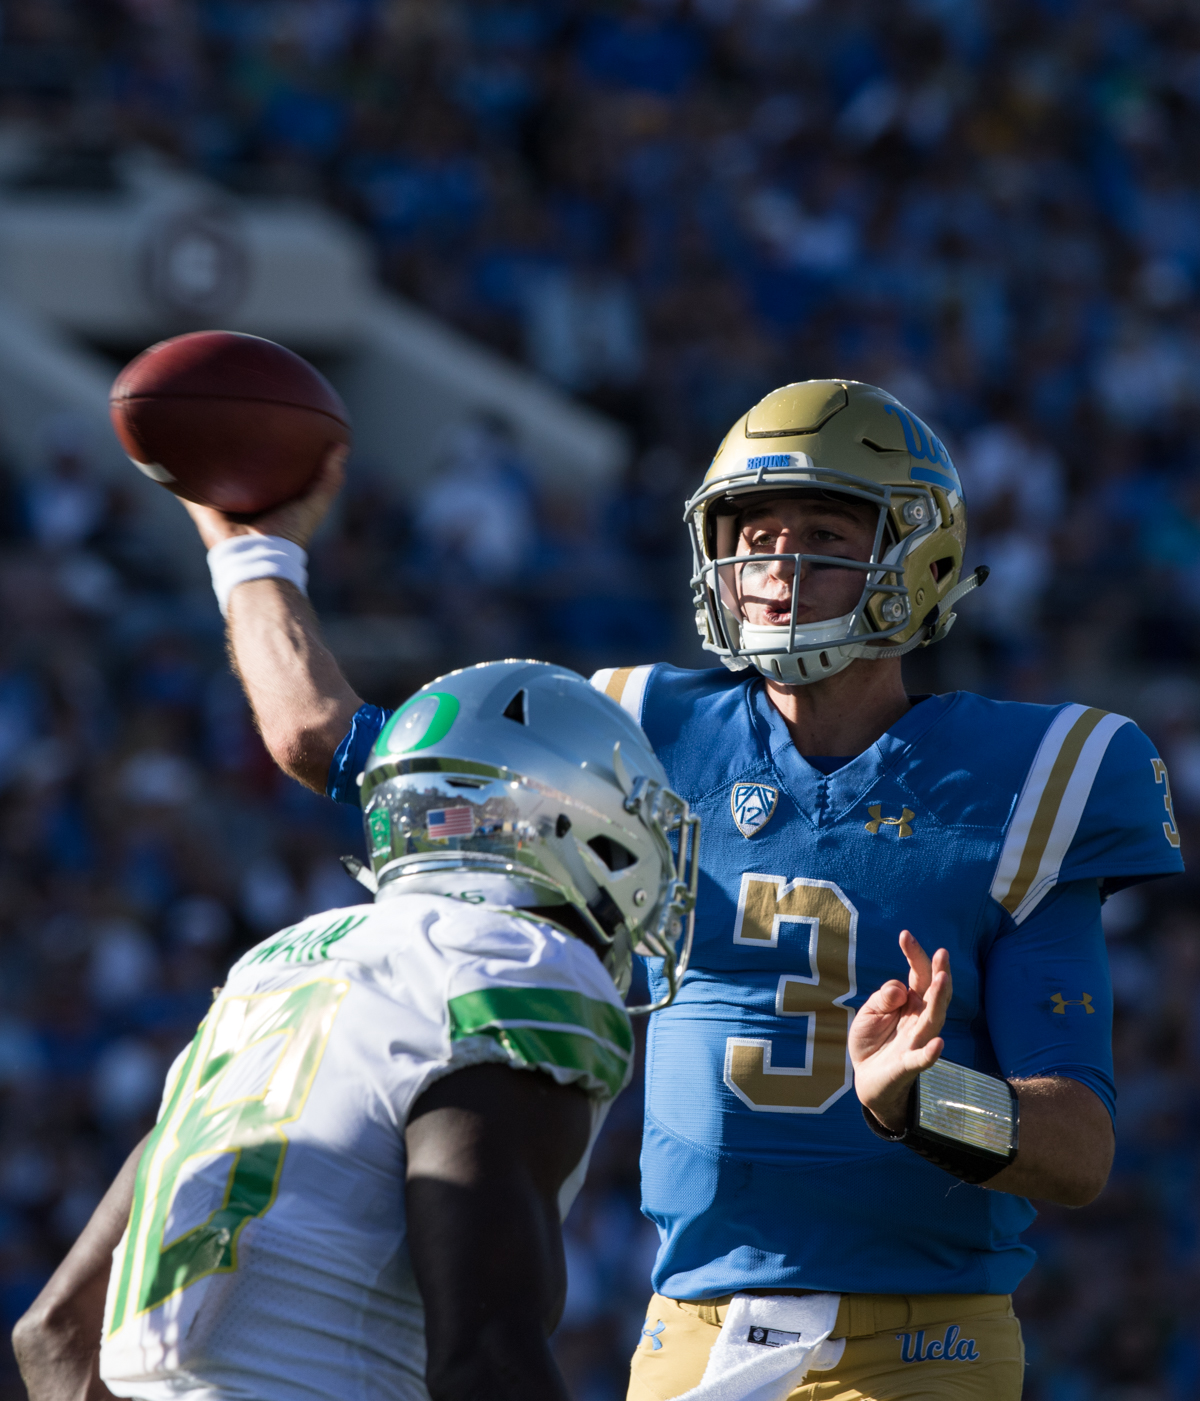 UCLA quarterback Josh Rosen (#3) throws a touchdown pass over Oregon linebacker Jimmie Swain (#18). The Oregon Ducks fell to the UCLA Bruins 14-31 after being shut out during the second half at the Rose Bowl Stadium in Pasadena, California.  This marks the third consecutive loss for the Ducks, dropping their record to 4-4 on the season.  Photo by Austin Hicks, Oregon News Lab